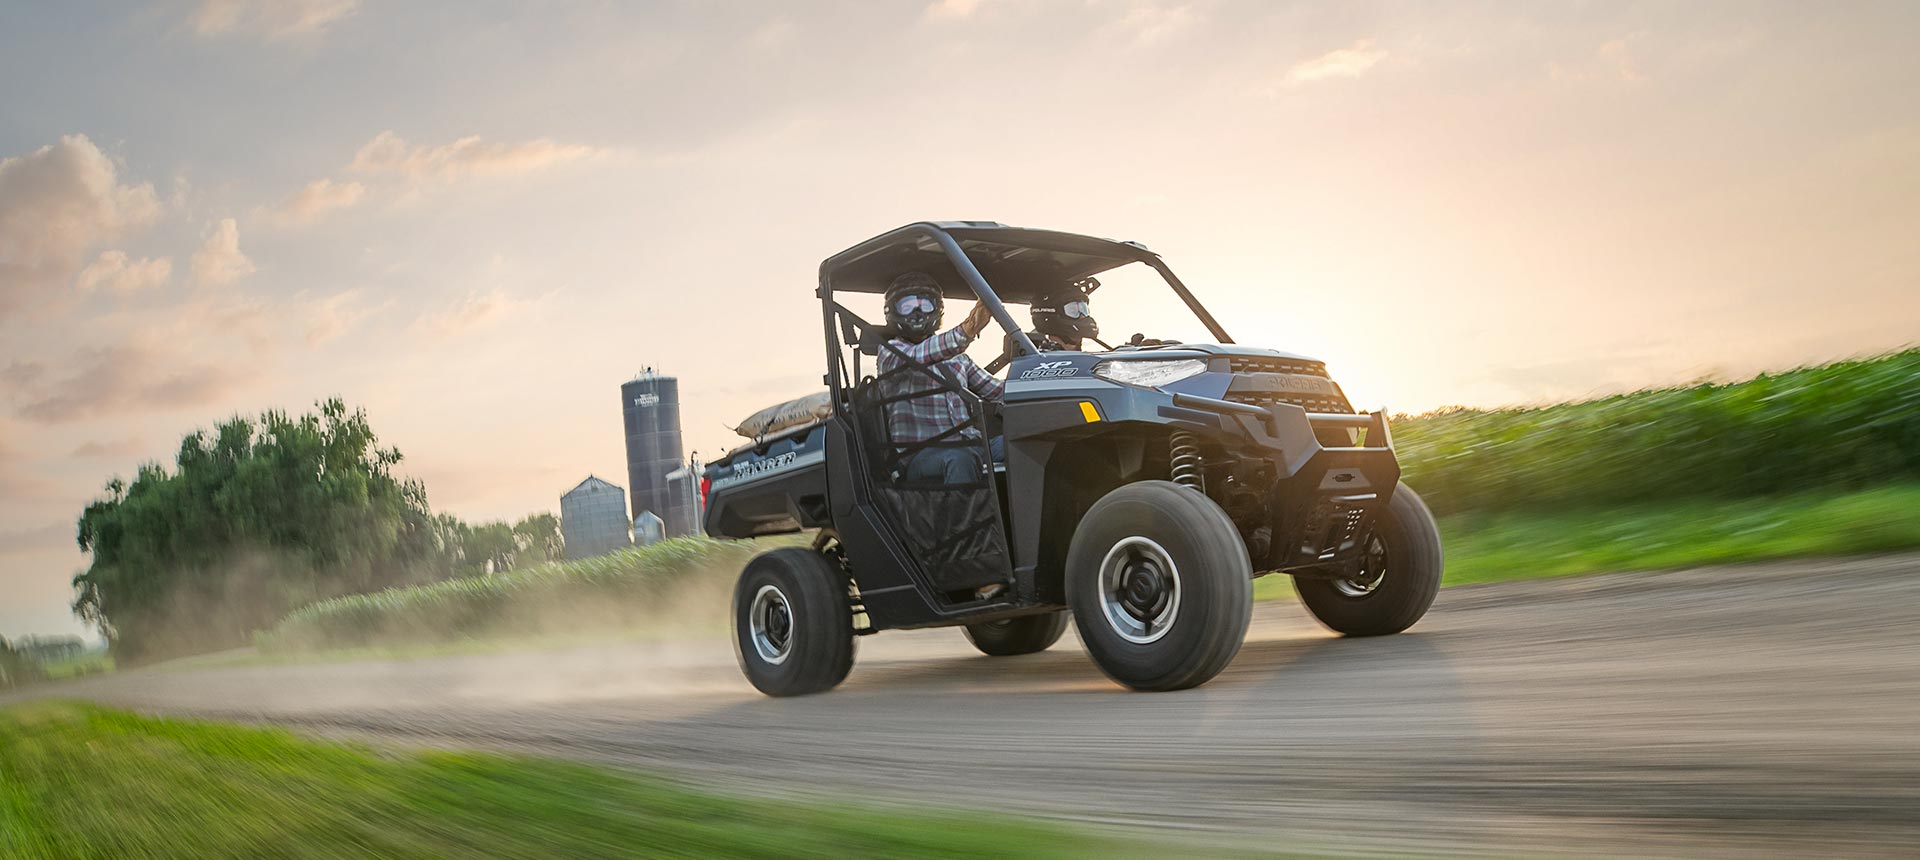 2019 Polaris Ranger XP 1000 EPS in Greer, South Carolina - Photo 11